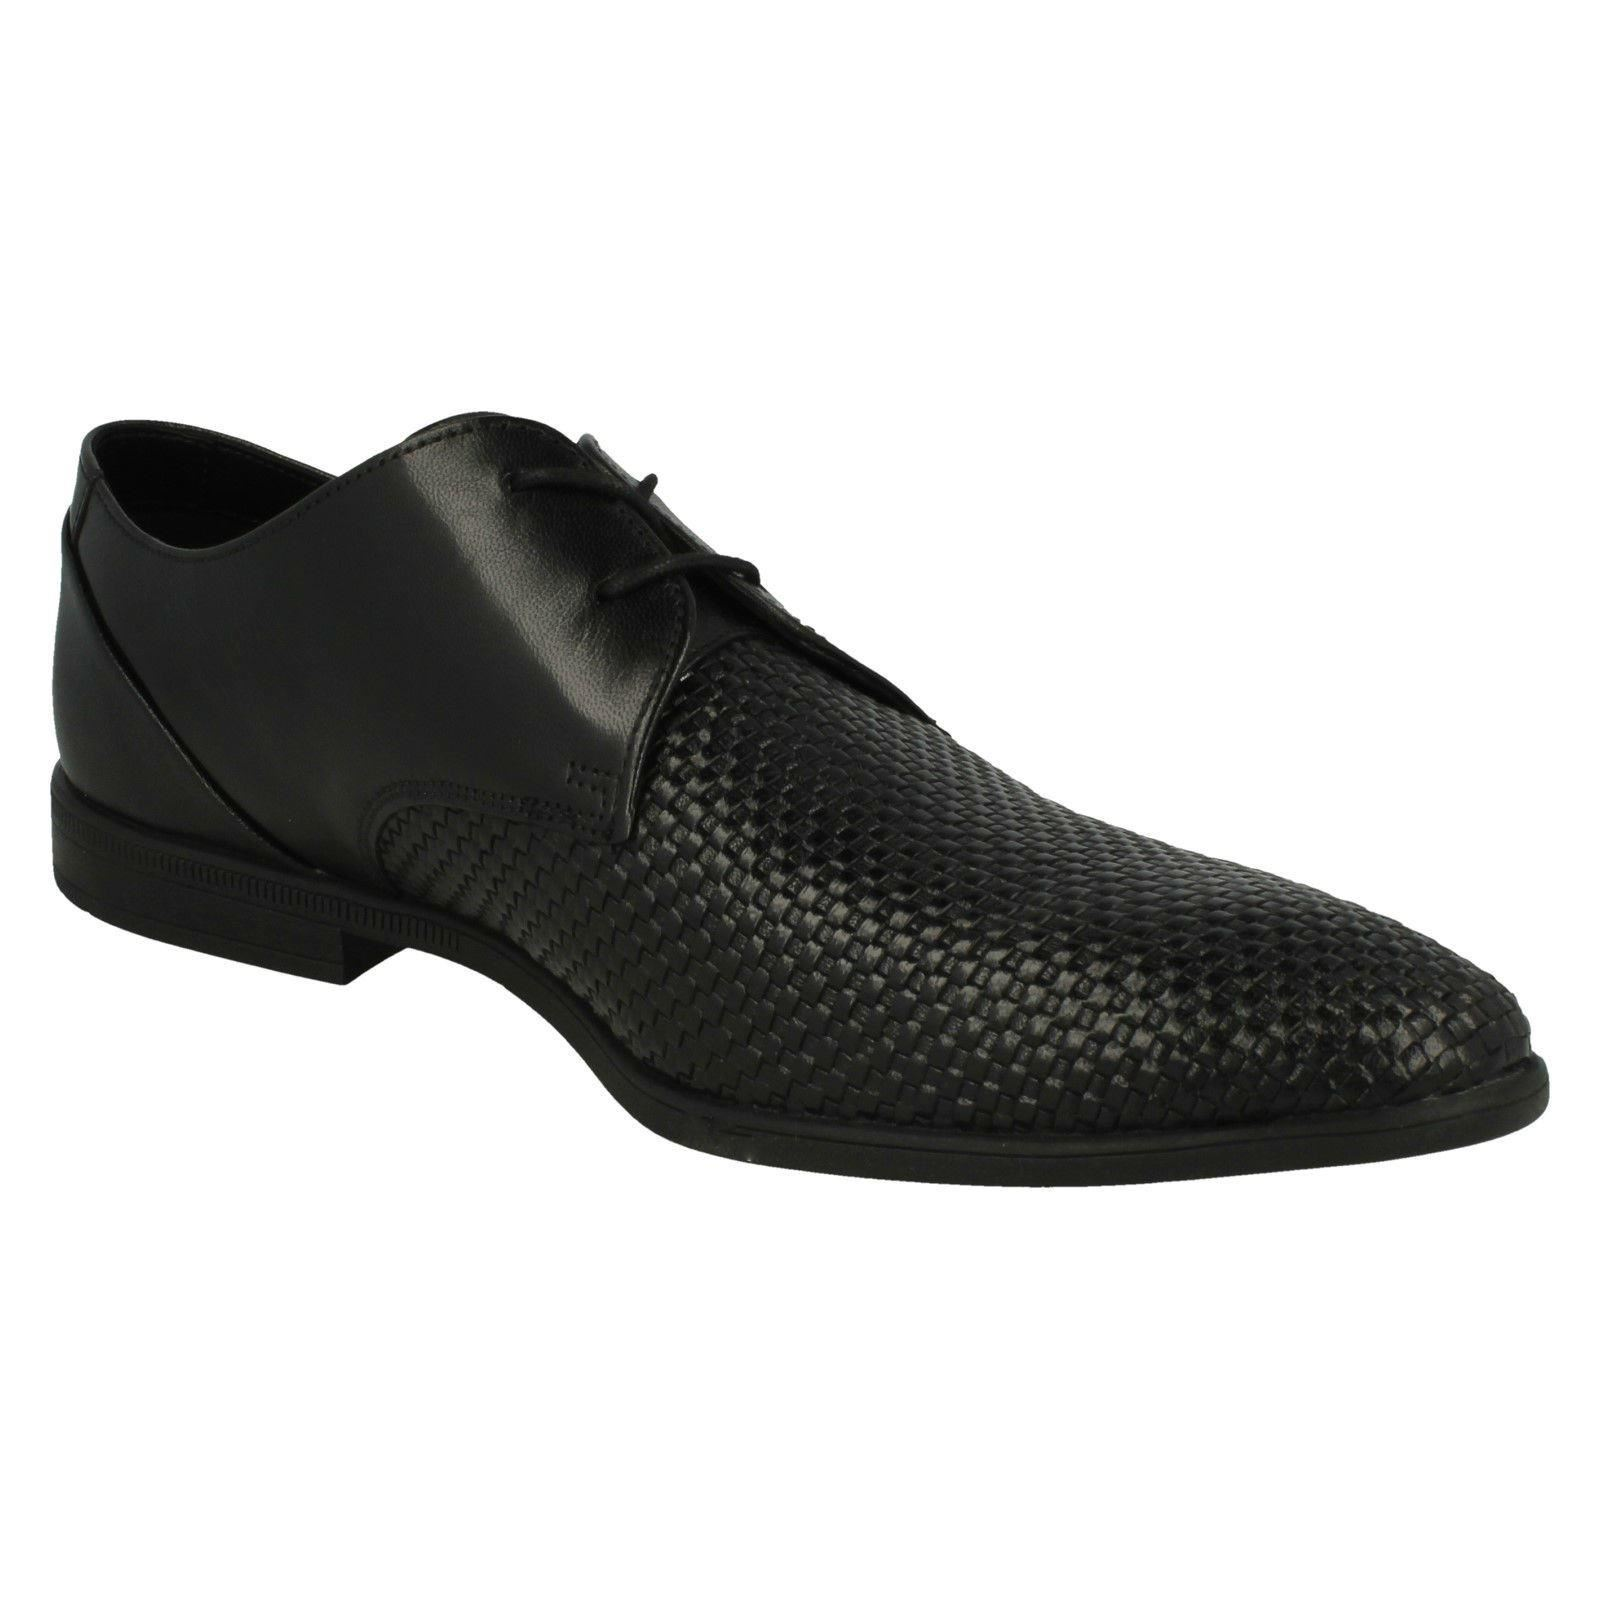 Mens Clarks Stylish Lace Up Shoes